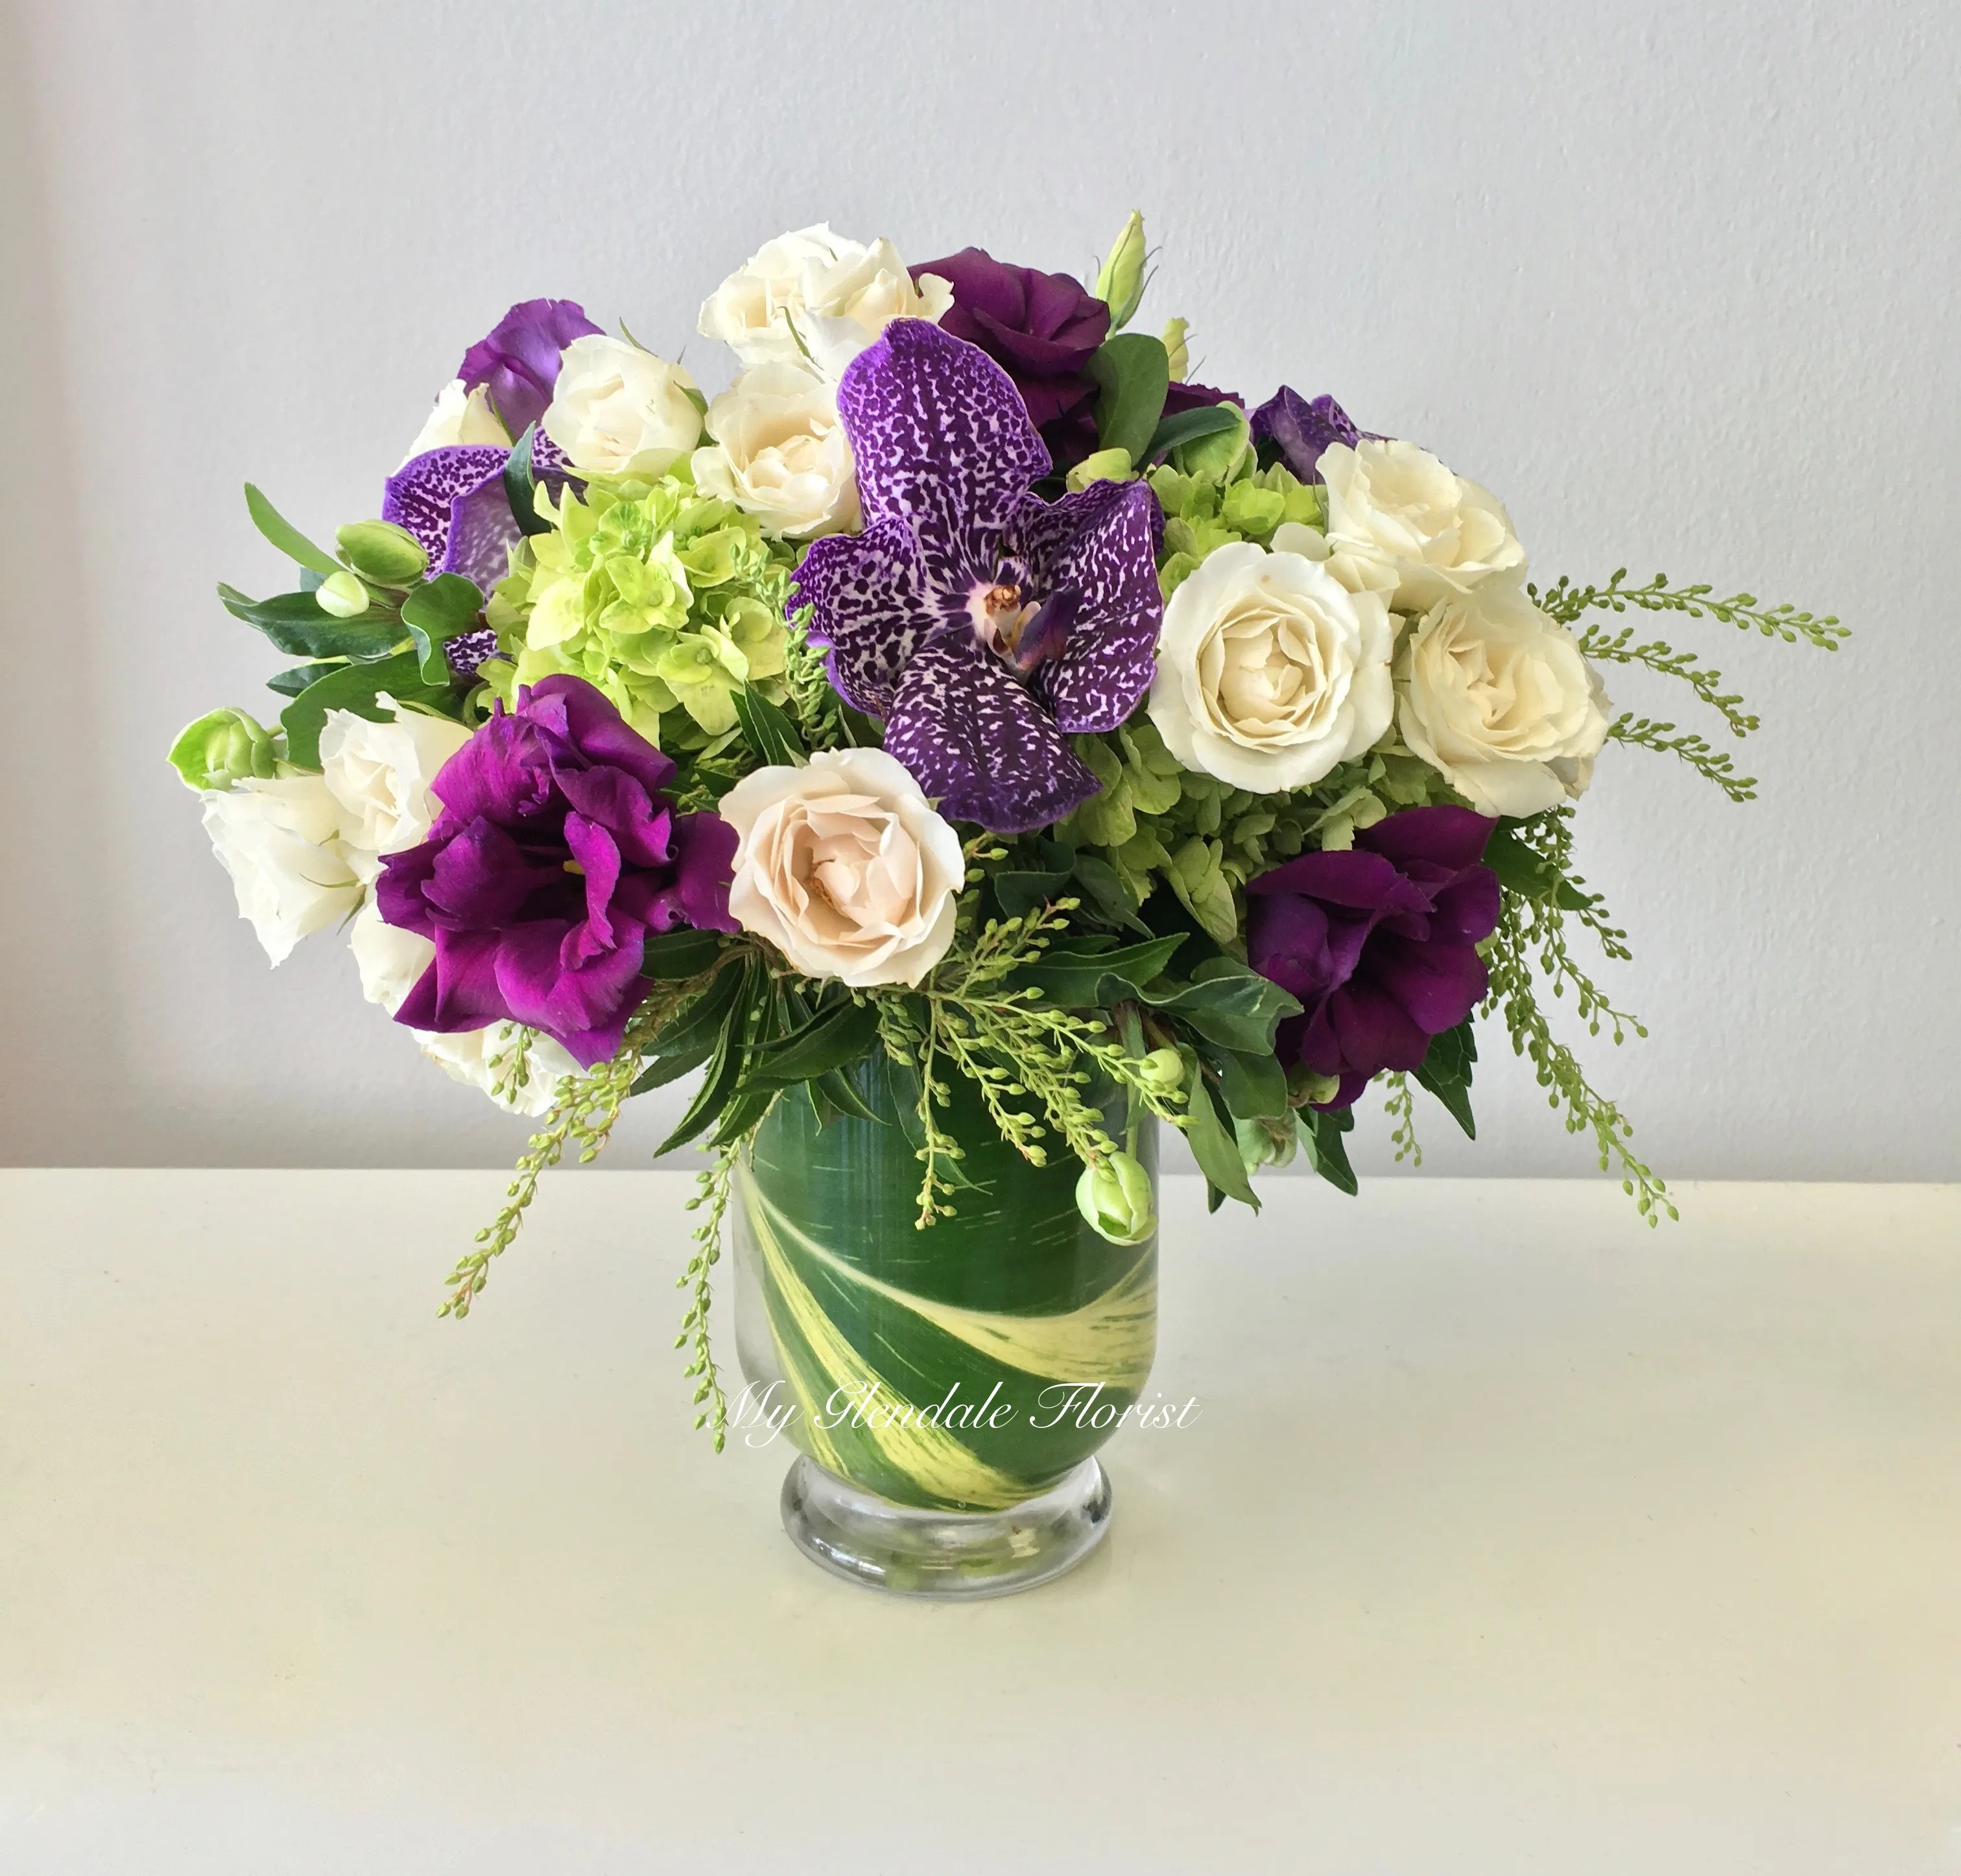 Vanda Orchid And Lisianthus Special Glendale Florist In Glendale Ca Glendale Florist